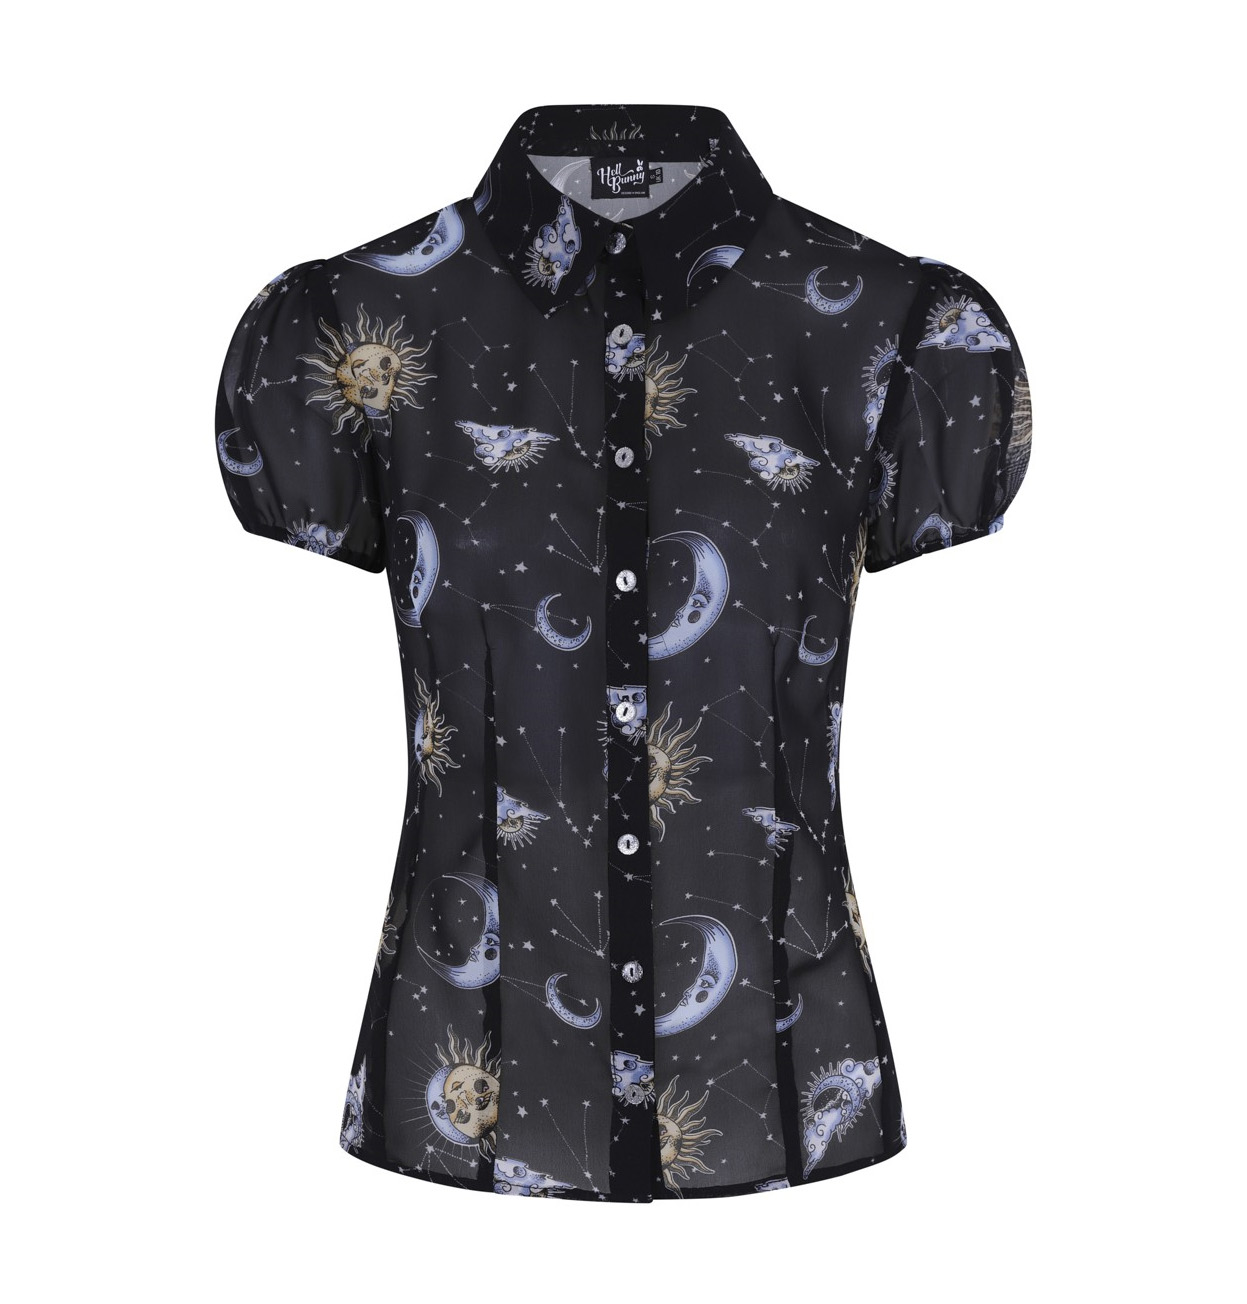 Hell-Bunny-50s-Shirt-Top-Gothic-Black-Sun-Moon-Stars-SOLARIS-Blouse-All-Sizes thumbnail 47